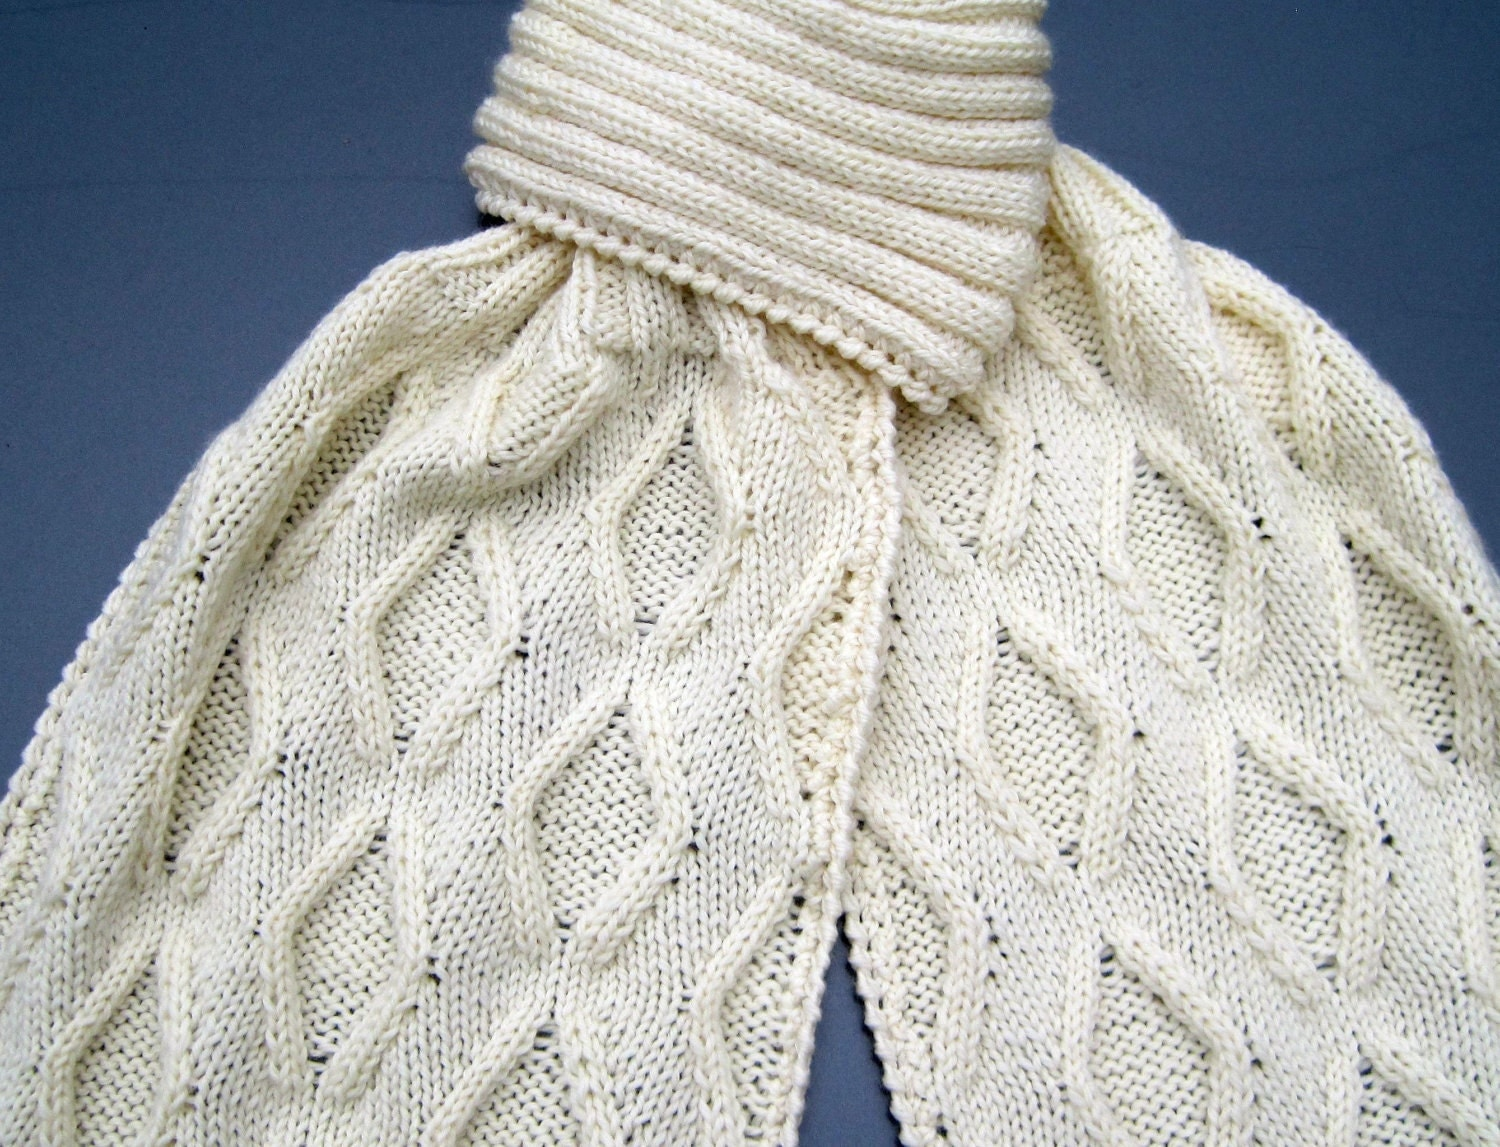 Knitting Patterns On Scarves : Knit Scarf Pattern: Diamond Cabled Turtleneck Scarf Knitting